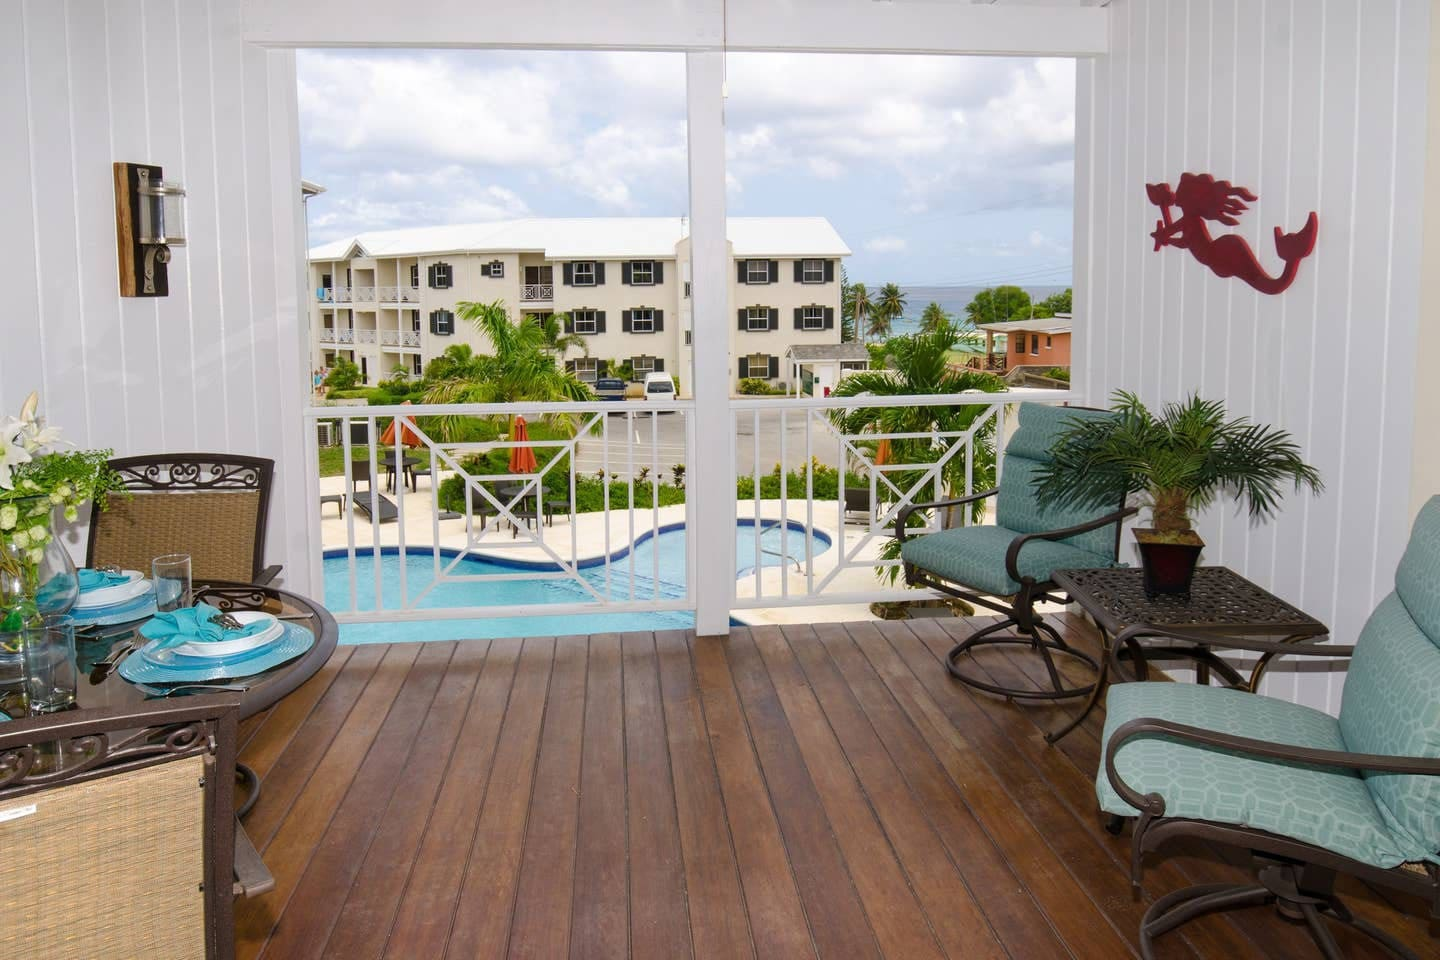 Your spacious balcony overlooks the pool and the ocean. It's on the first floor of the building to the back so no annoying traffic noice!